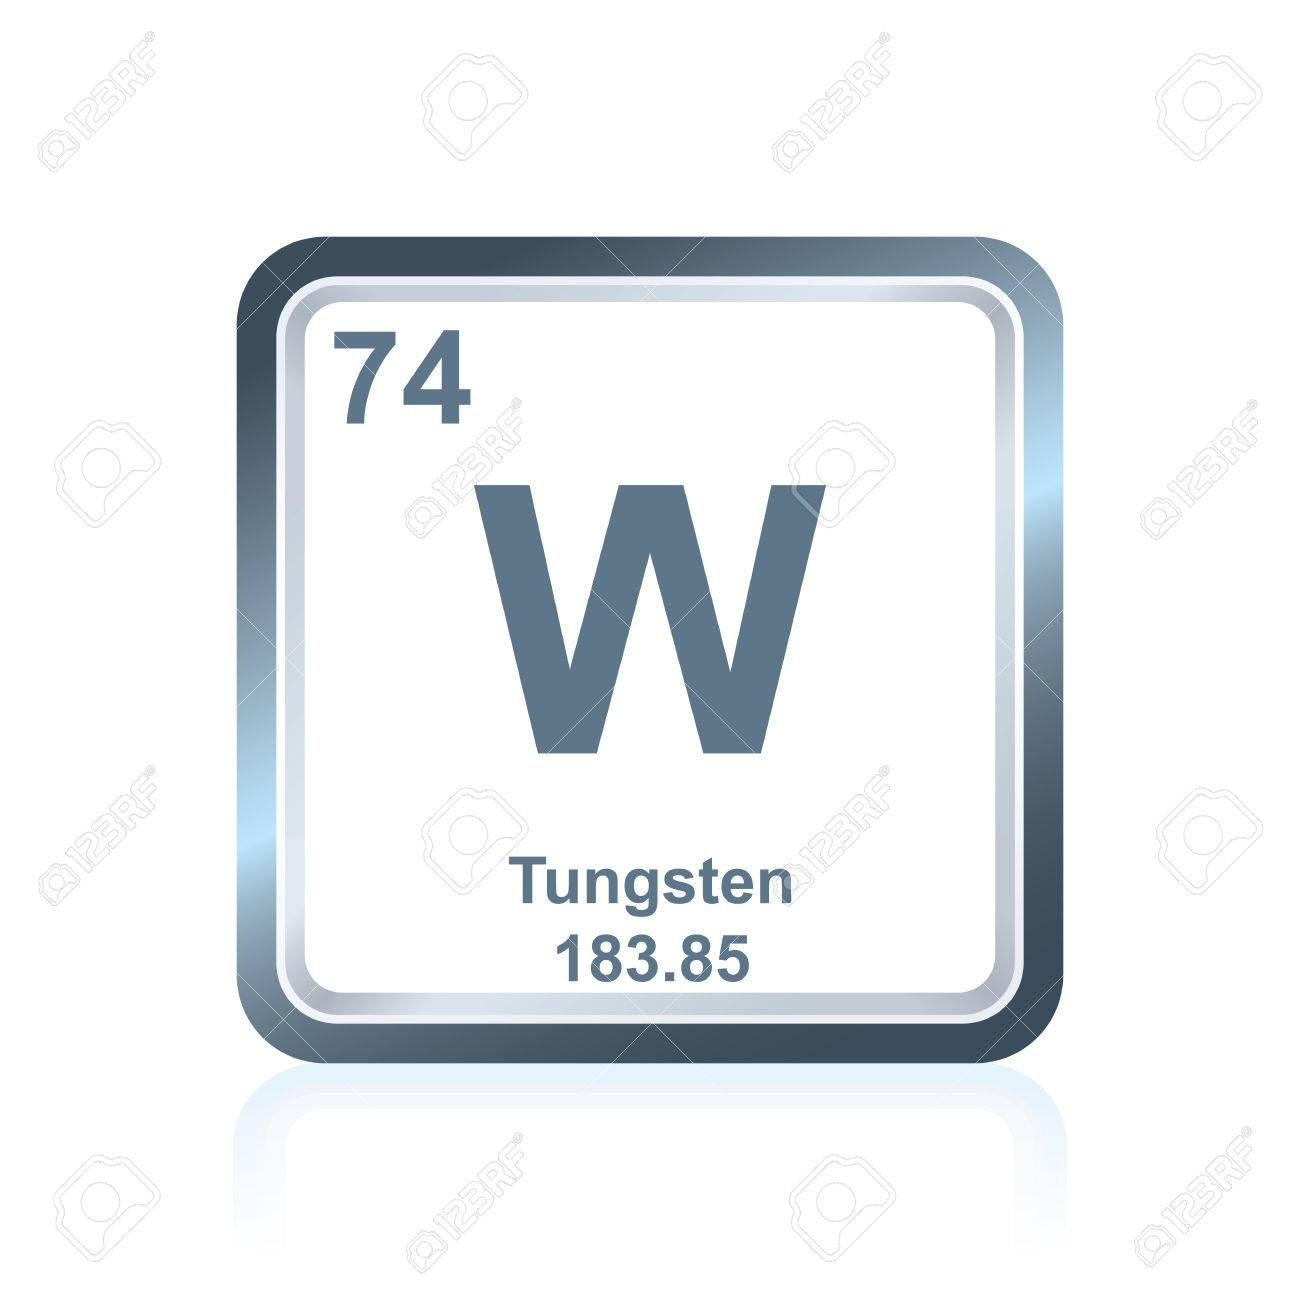 Symbol of chemical element tungsten as seen on the periodic table symbol of chemical element tungsten as seen on the periodic table of the elements including urtaz Image collections